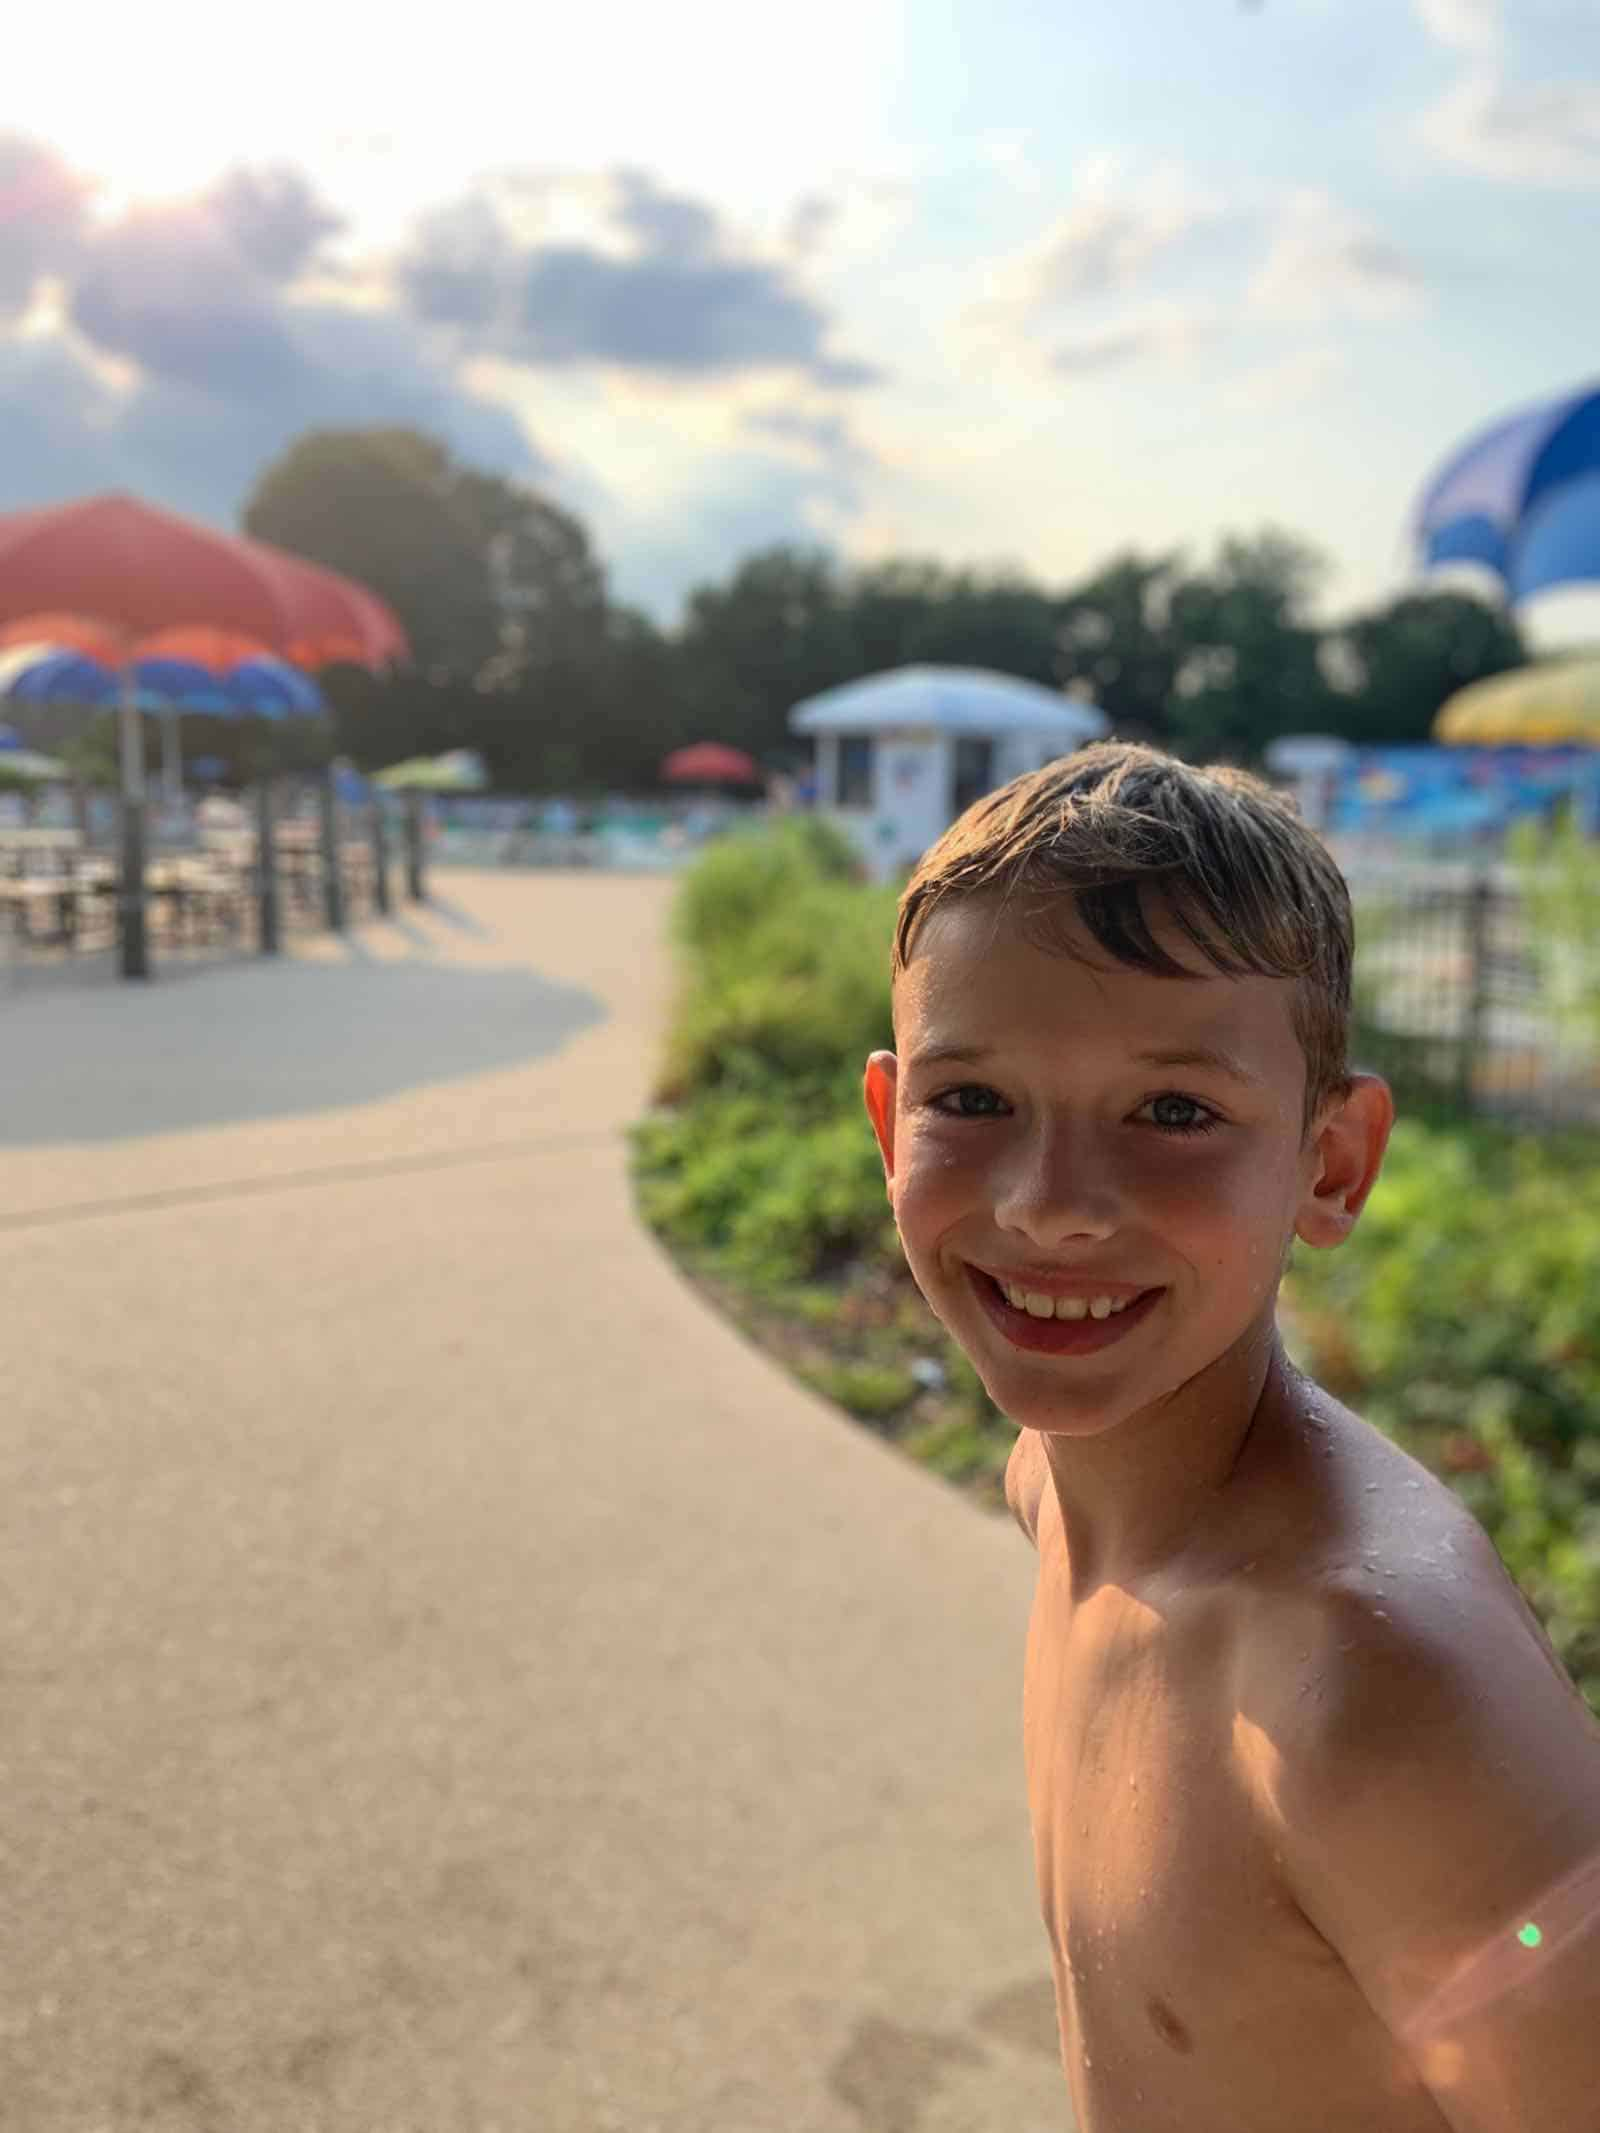 our son at the water park